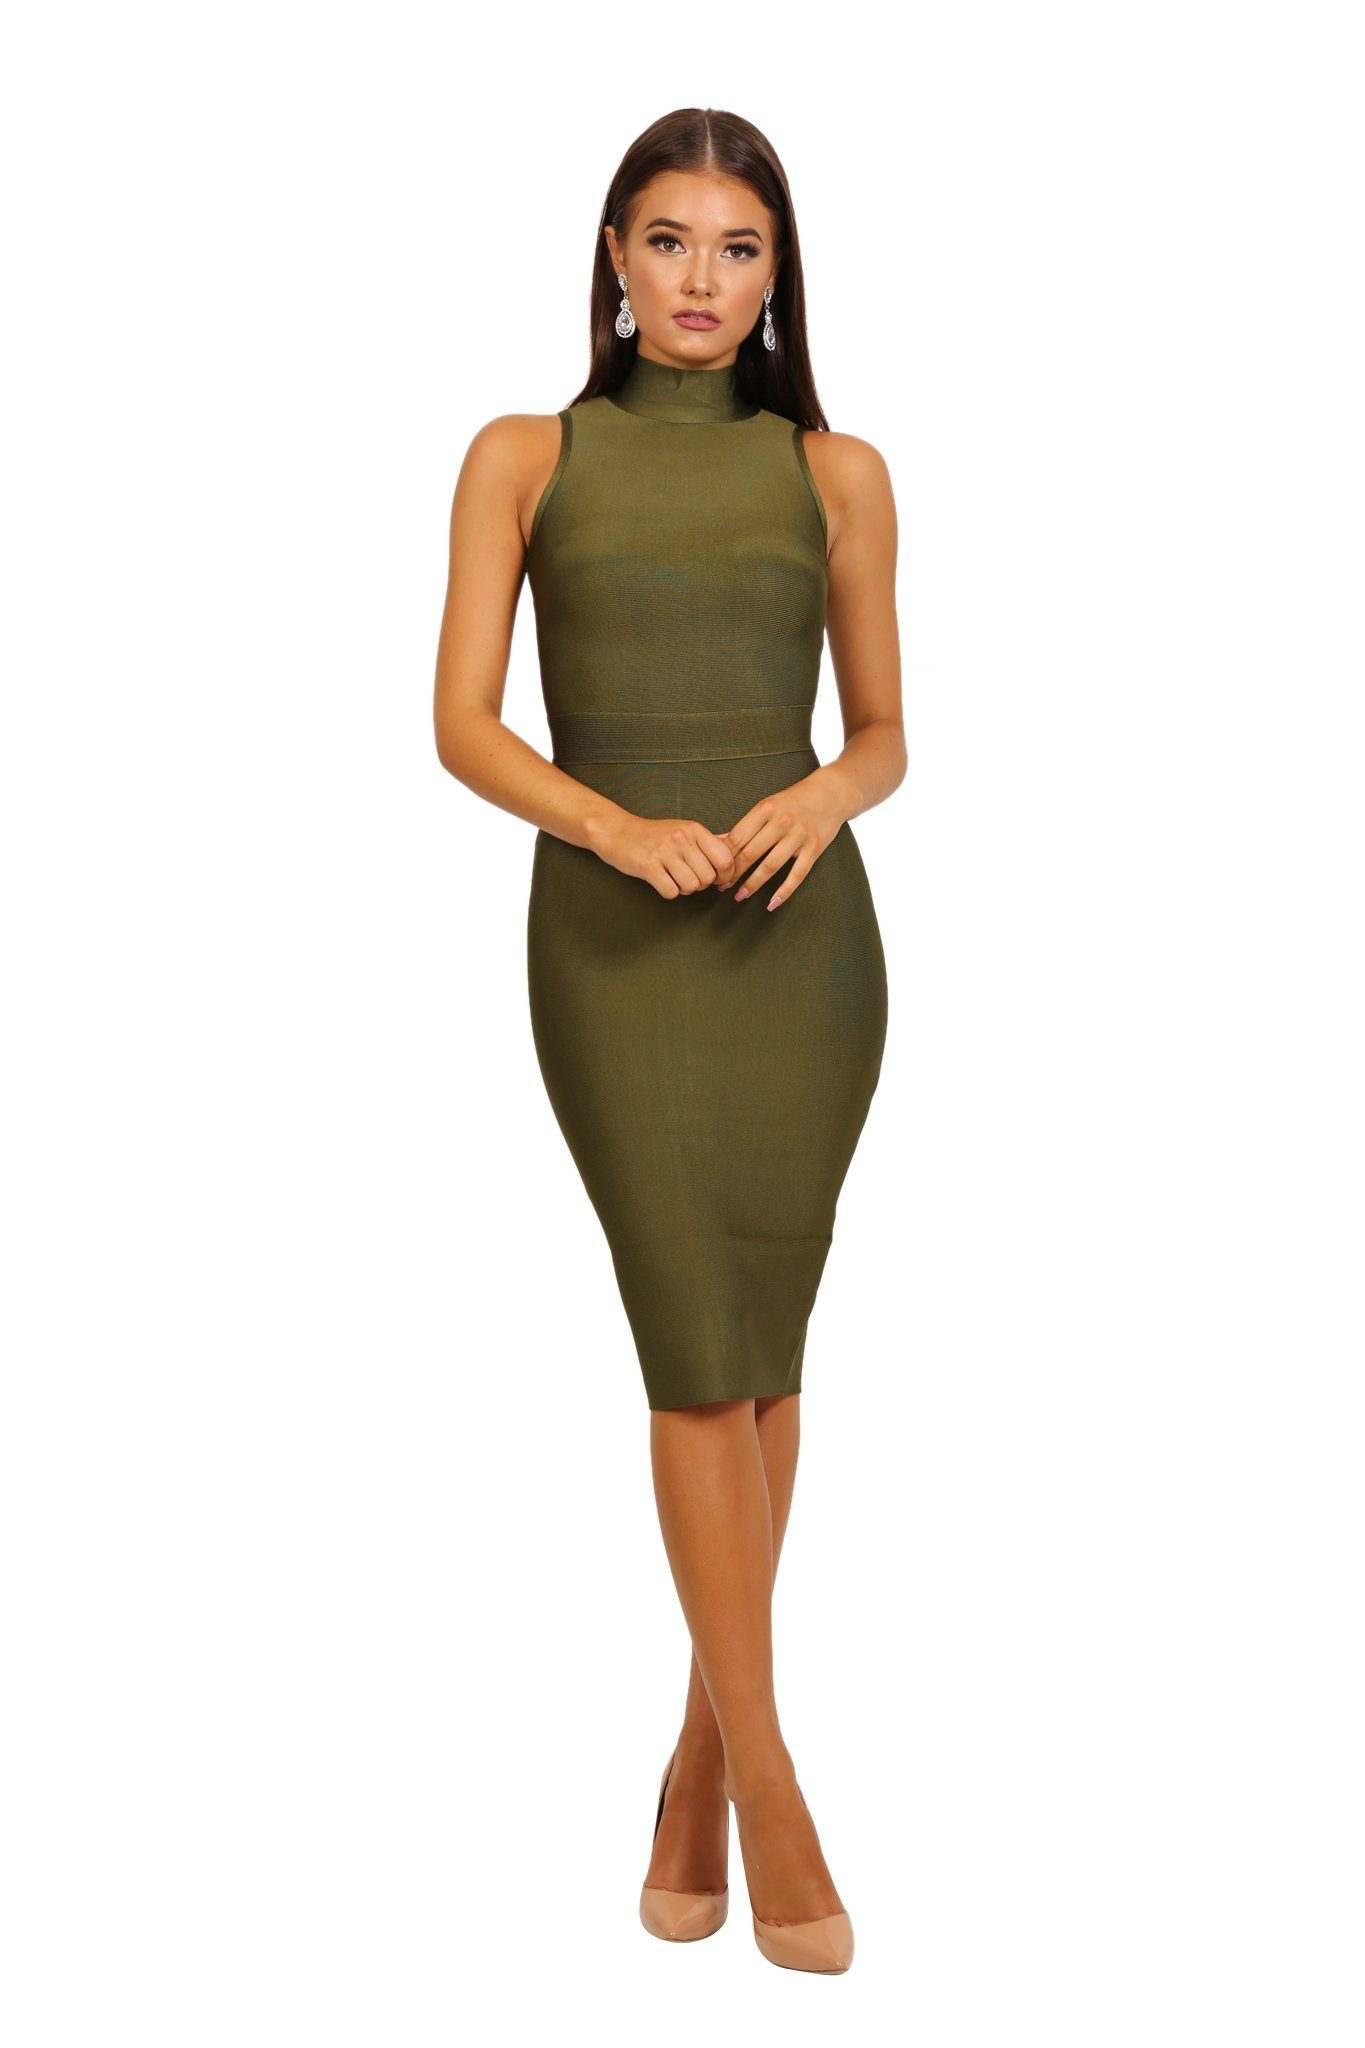 ff50010bb9aae6 Olive green colored high neck sleeveless tight fitted knee length bandage  dress